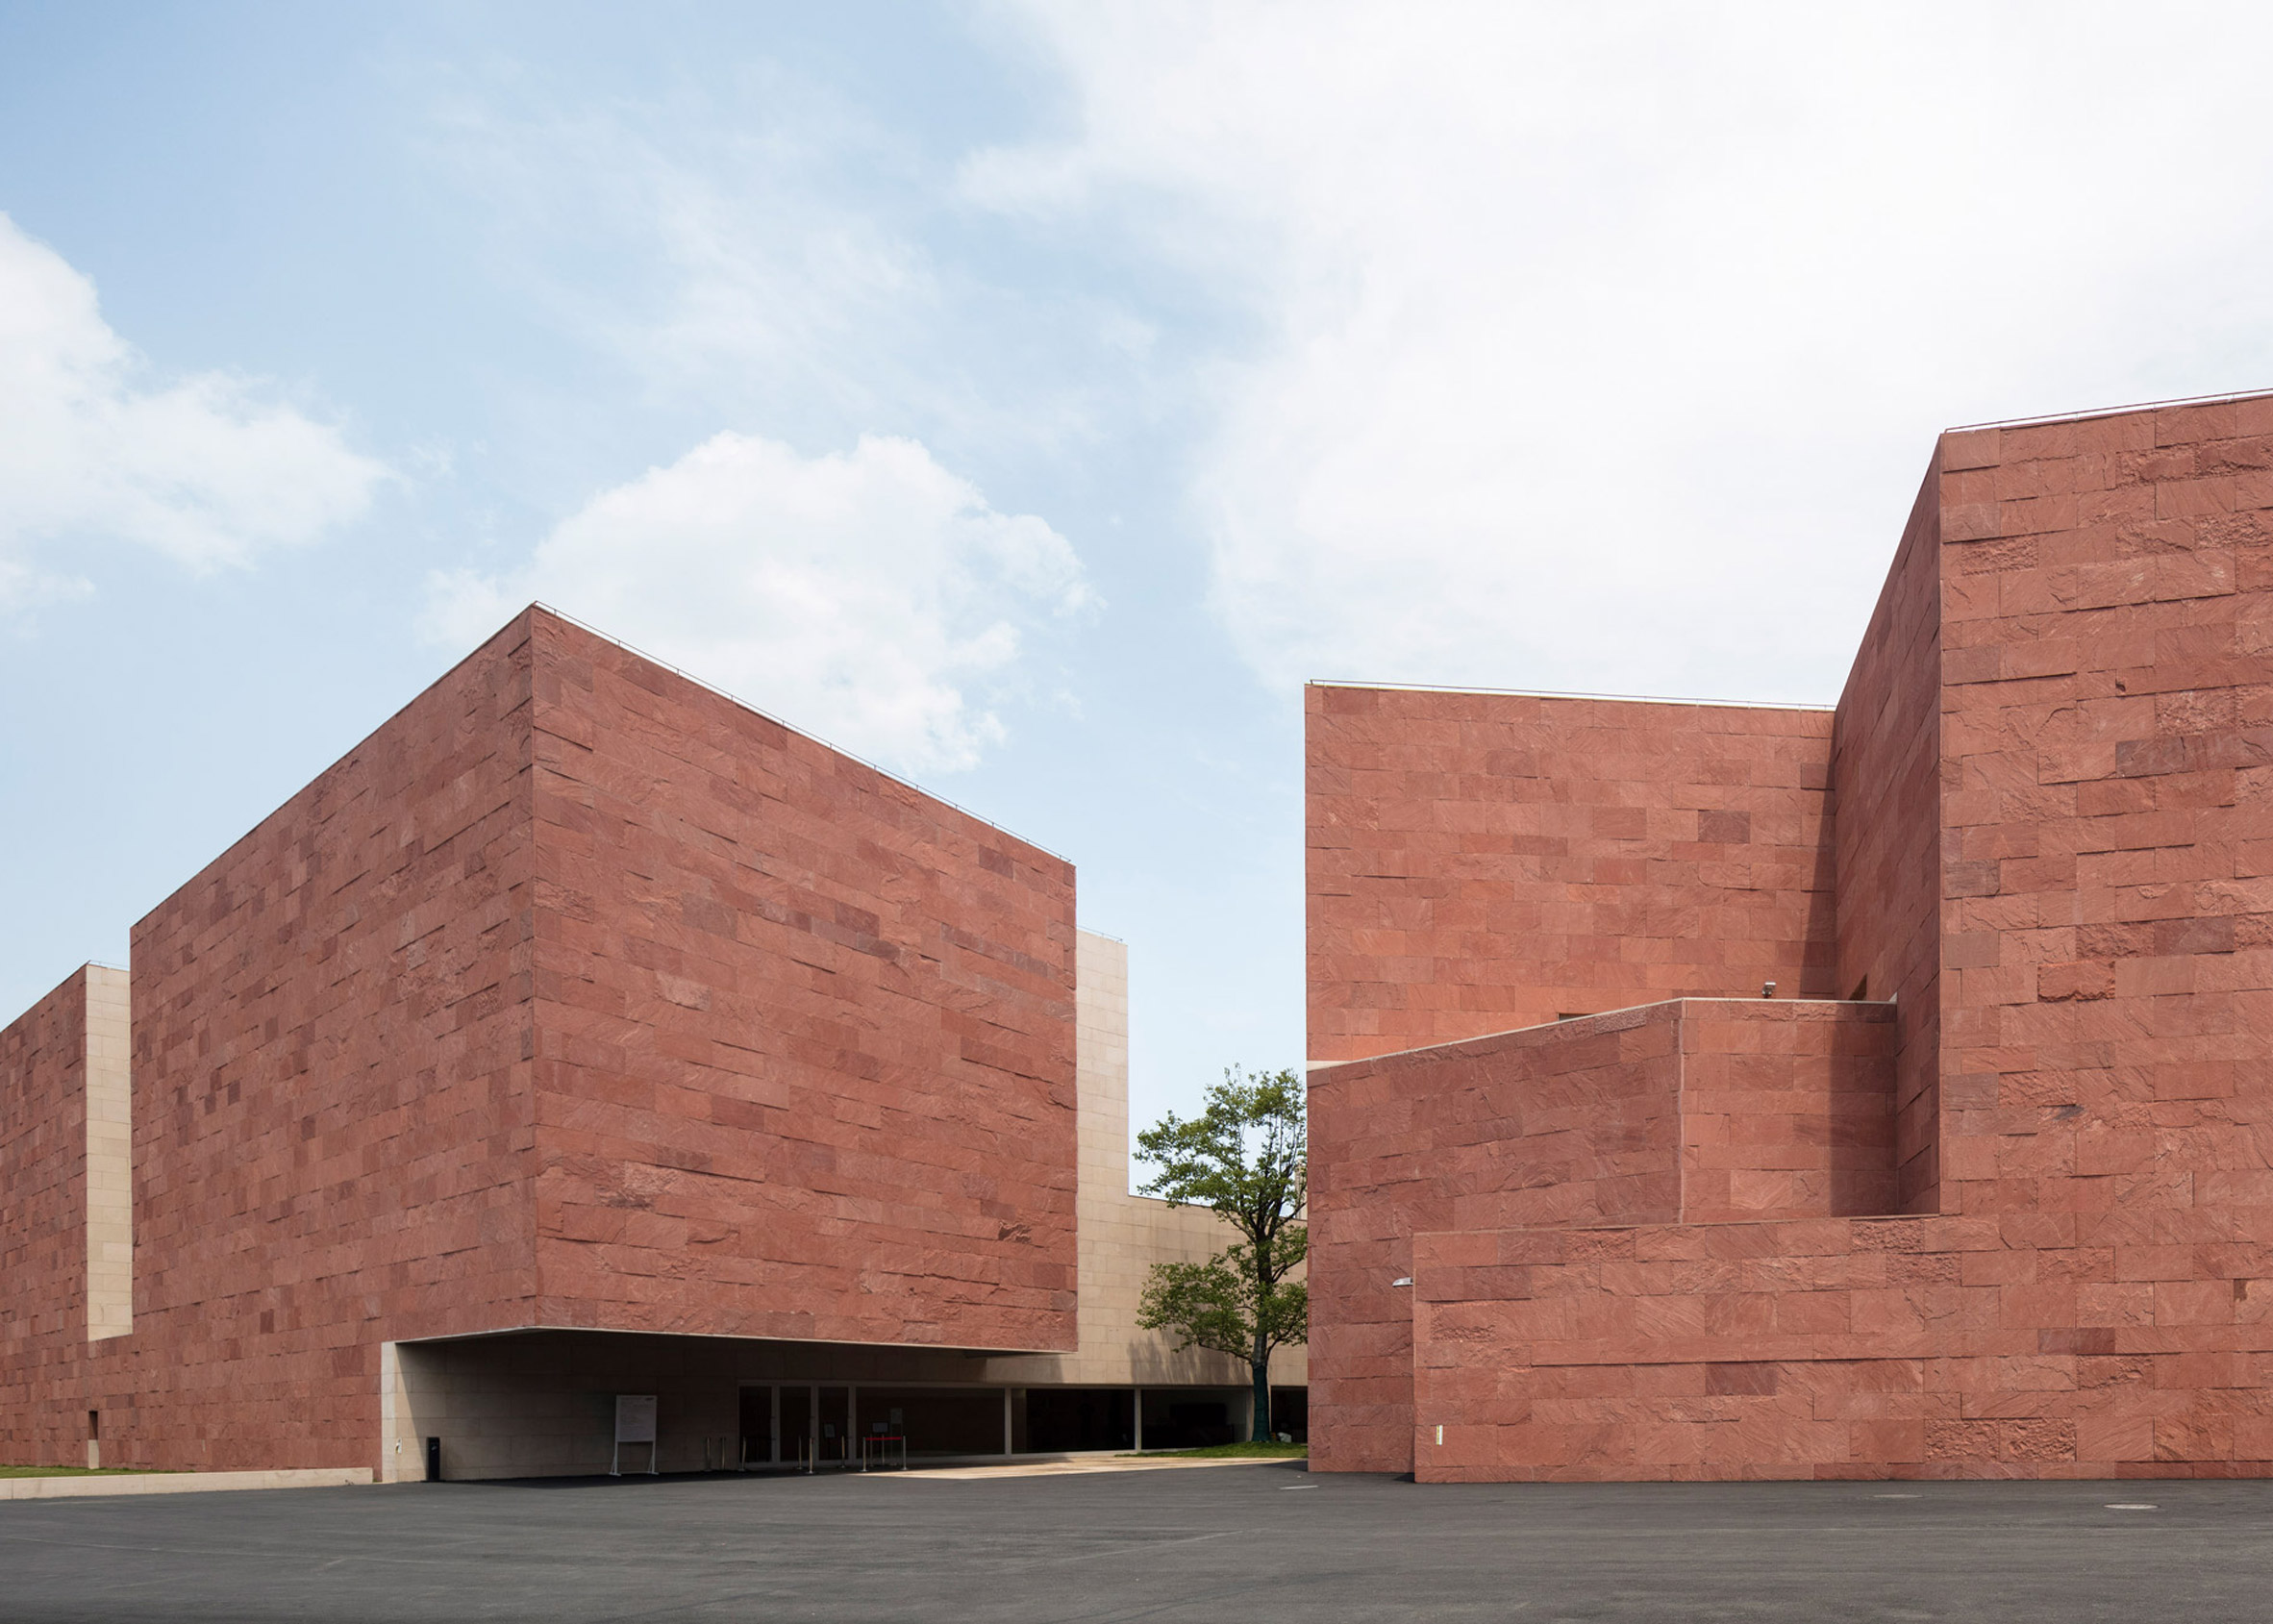 International Design Museum China by Alvaro Siza, Dezeen's top museums and galleries